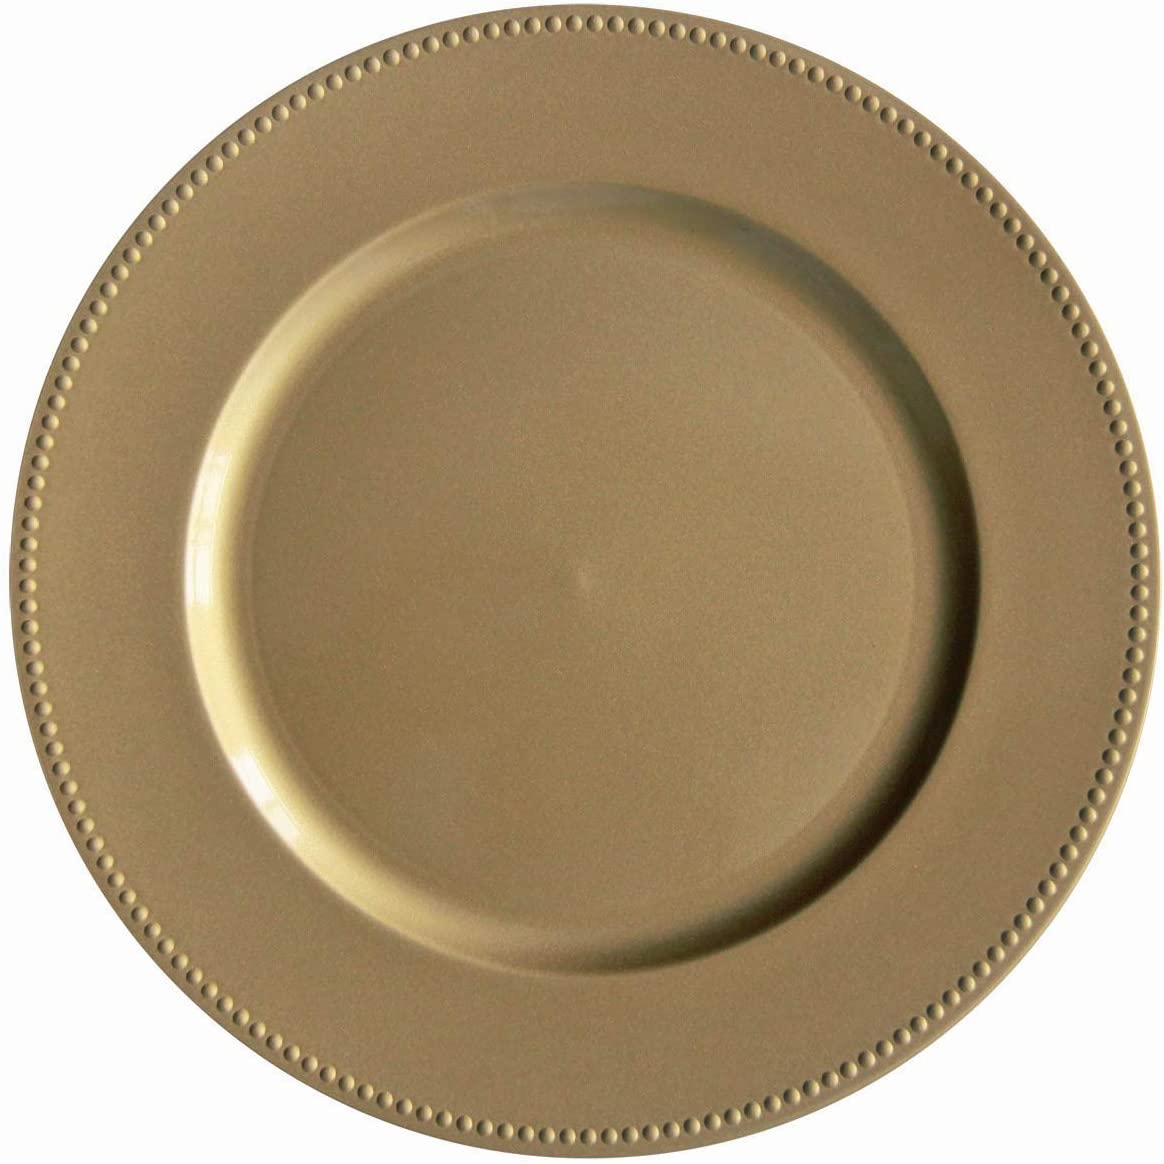 Gold Plastic Beaded Charger Plates - 12 pcs 13 Inch Round Wedding Party Decroation Charger Plates (Gold, 12)